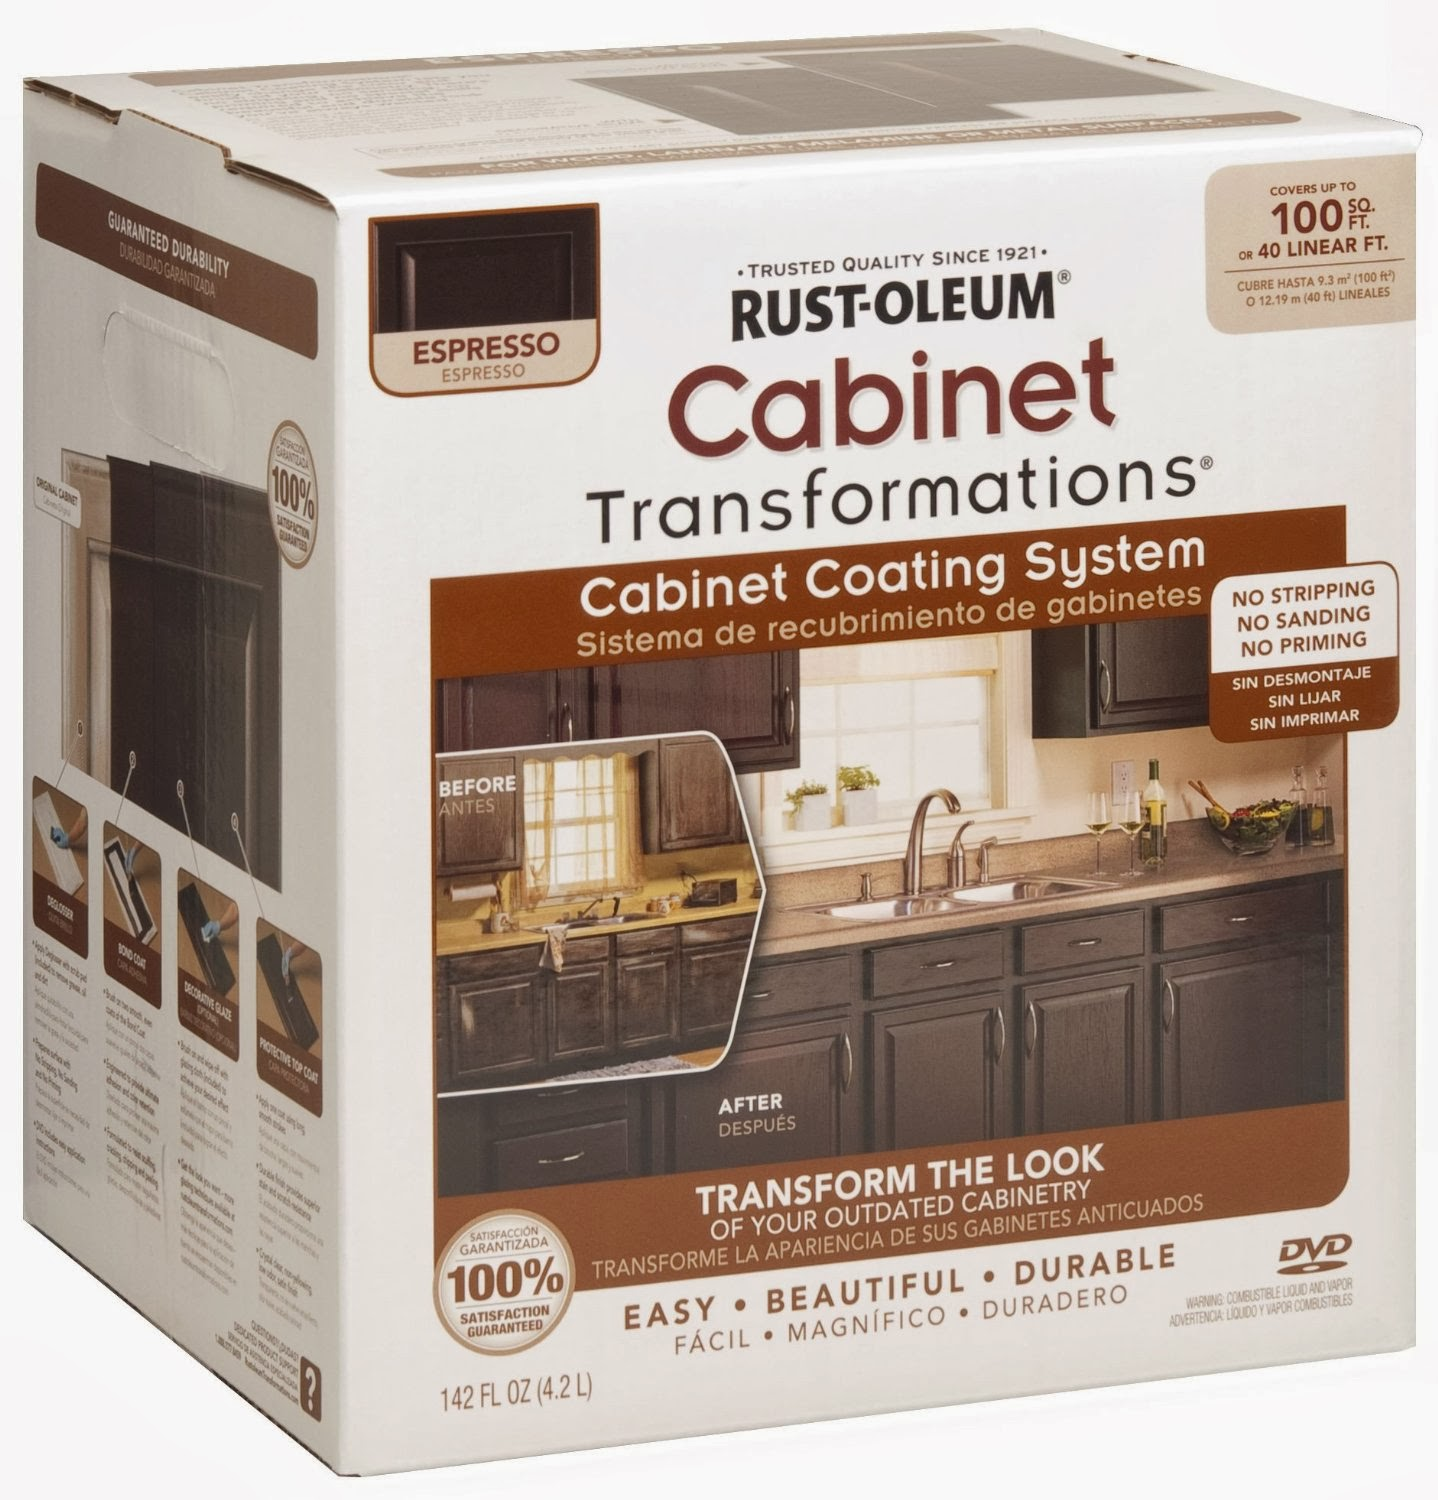 Rustoleum Kitchen Cabinet Kit Reviews Buy White Cabinets Rust Oleum Transformation Review Before And After